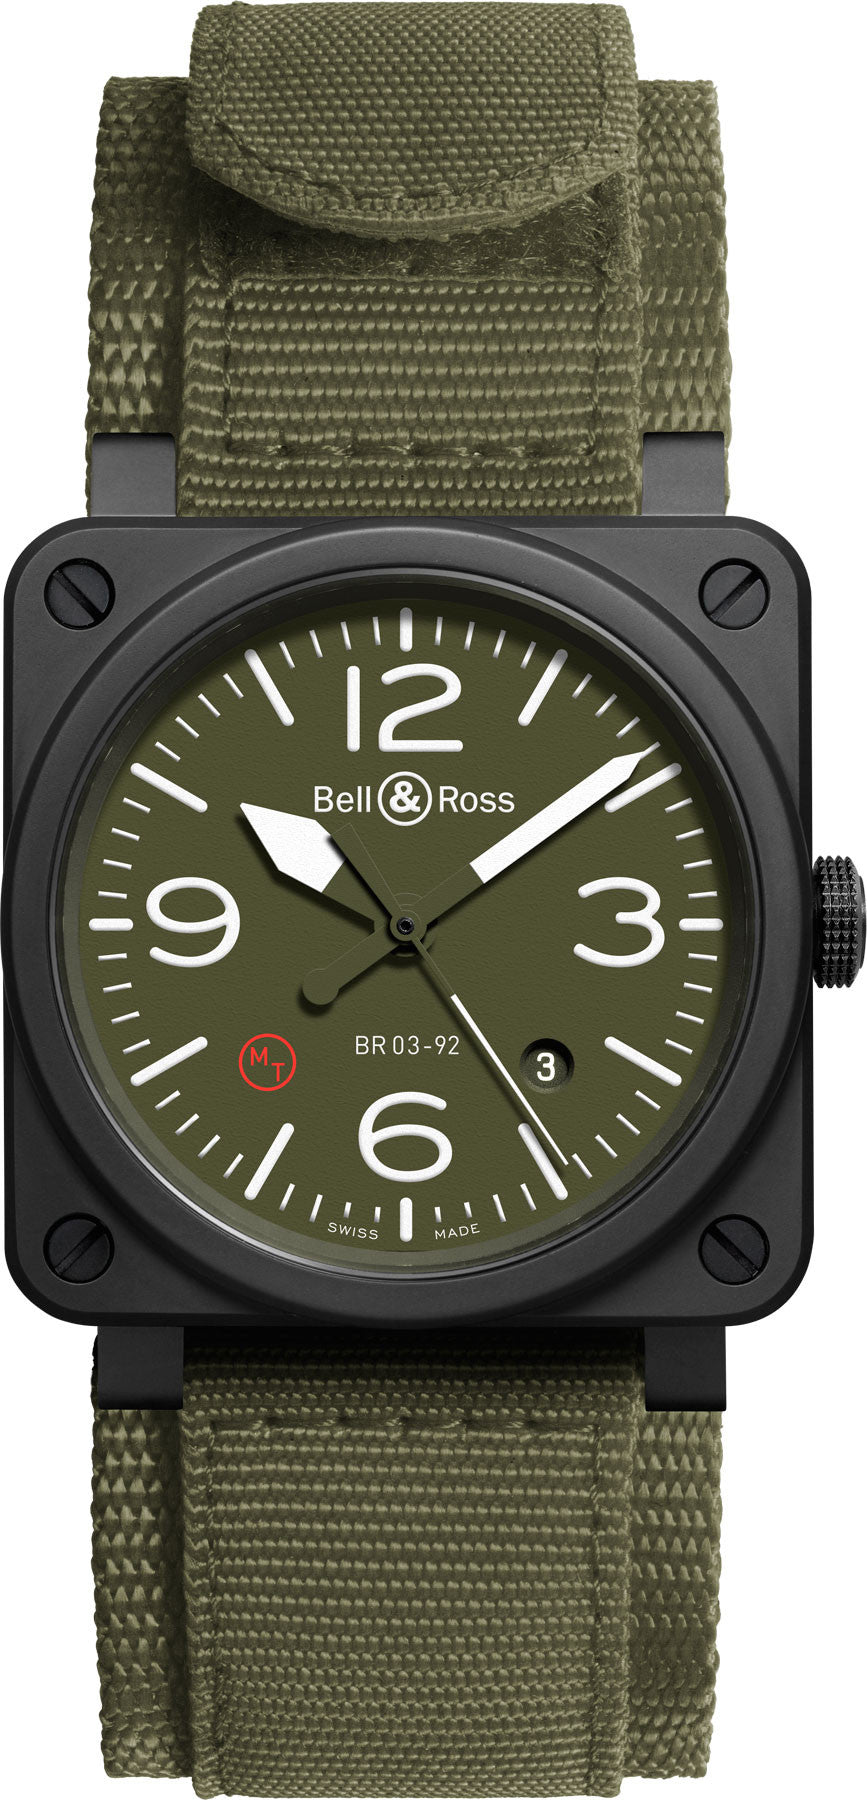 Bell & Ross Watch BR 03 92 Military Type